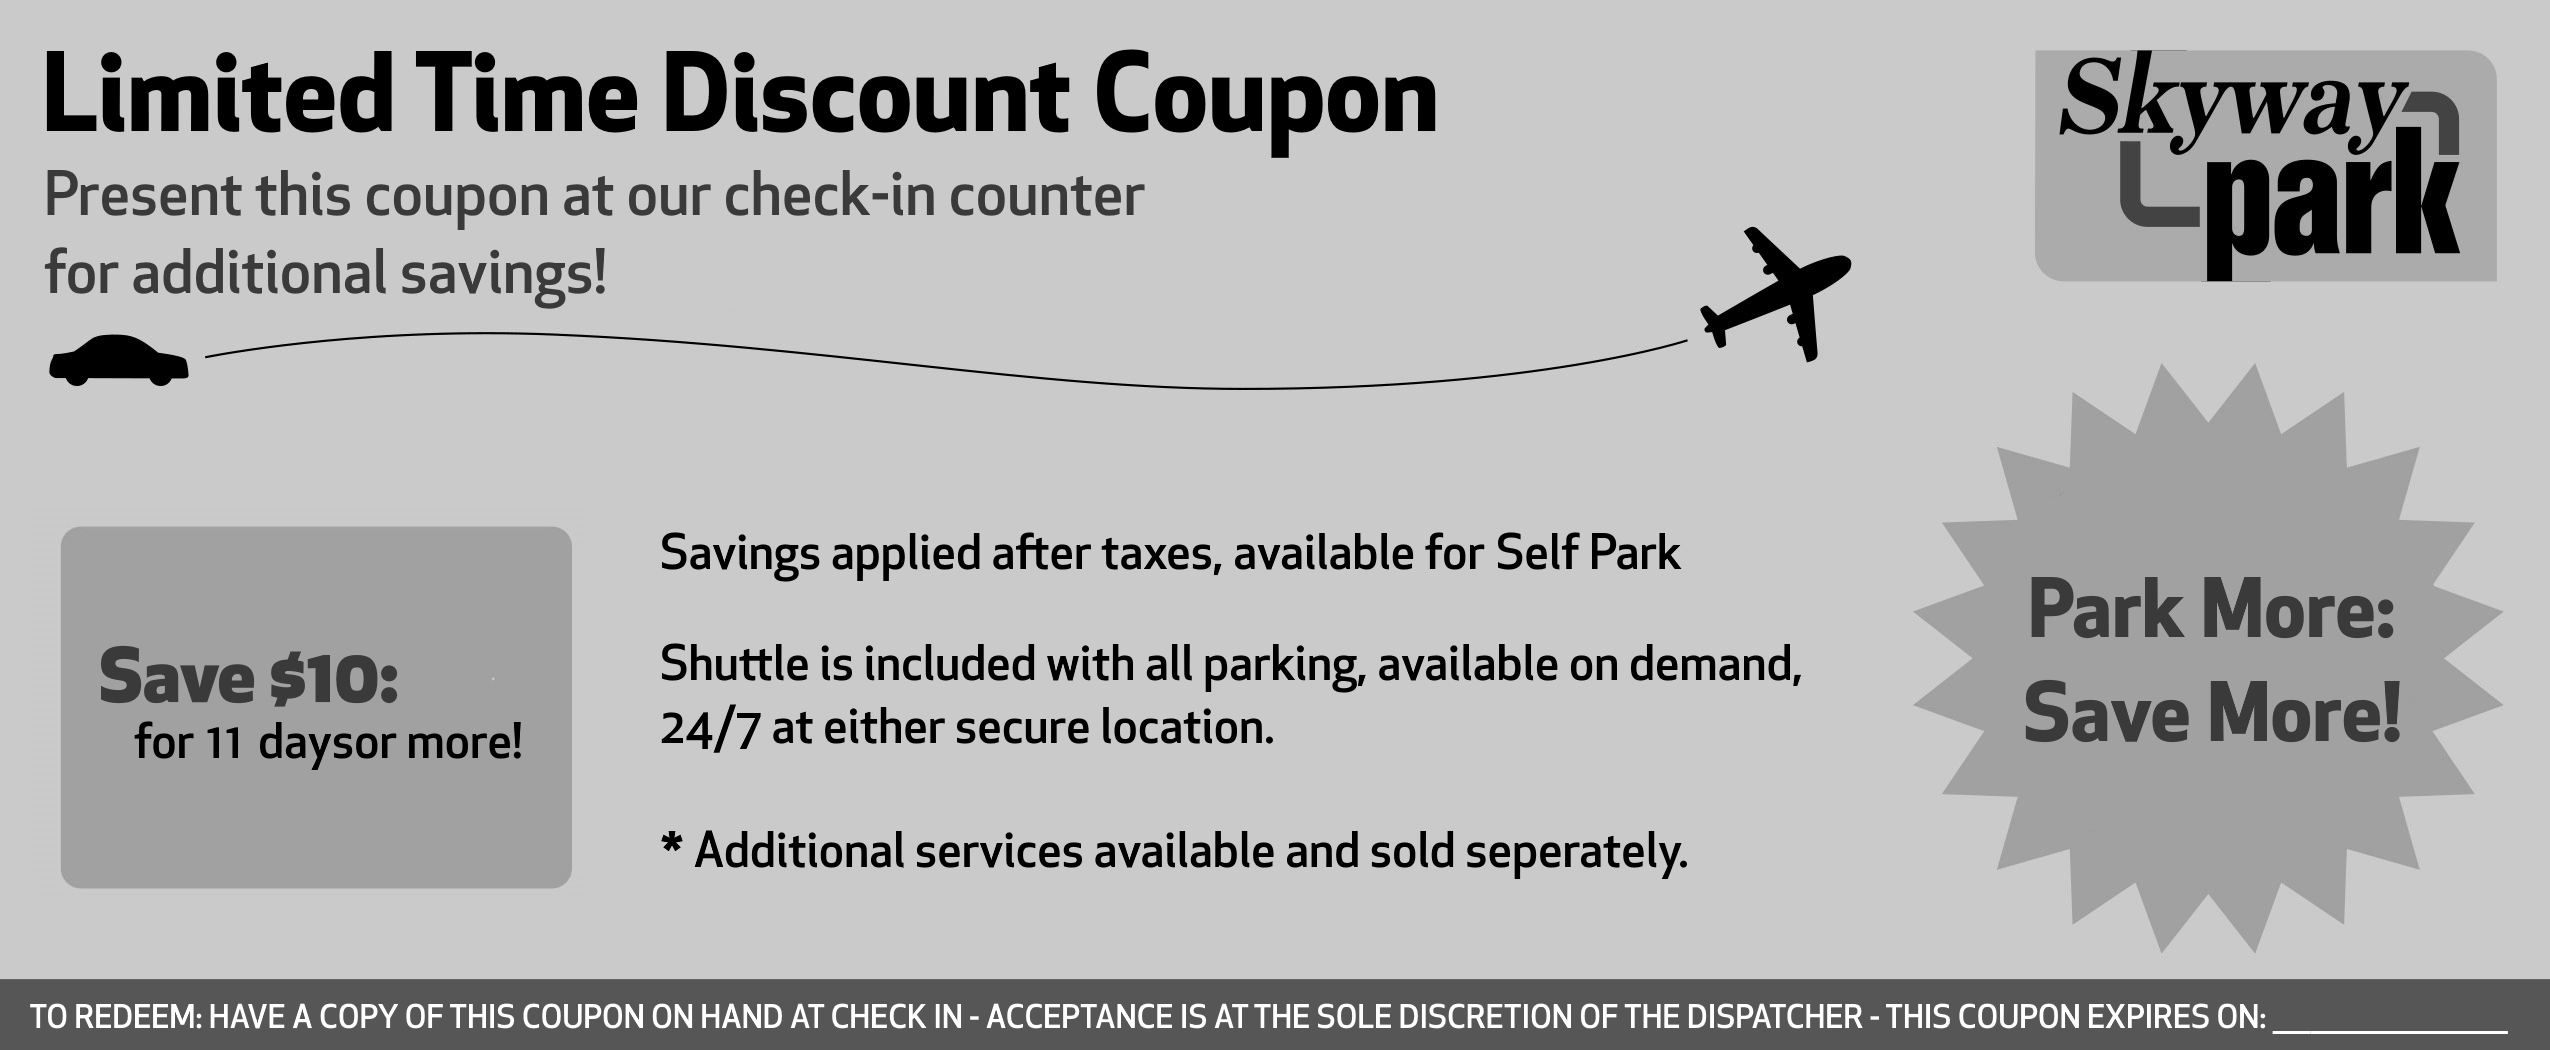 ParkingCoupon Front - Black and White